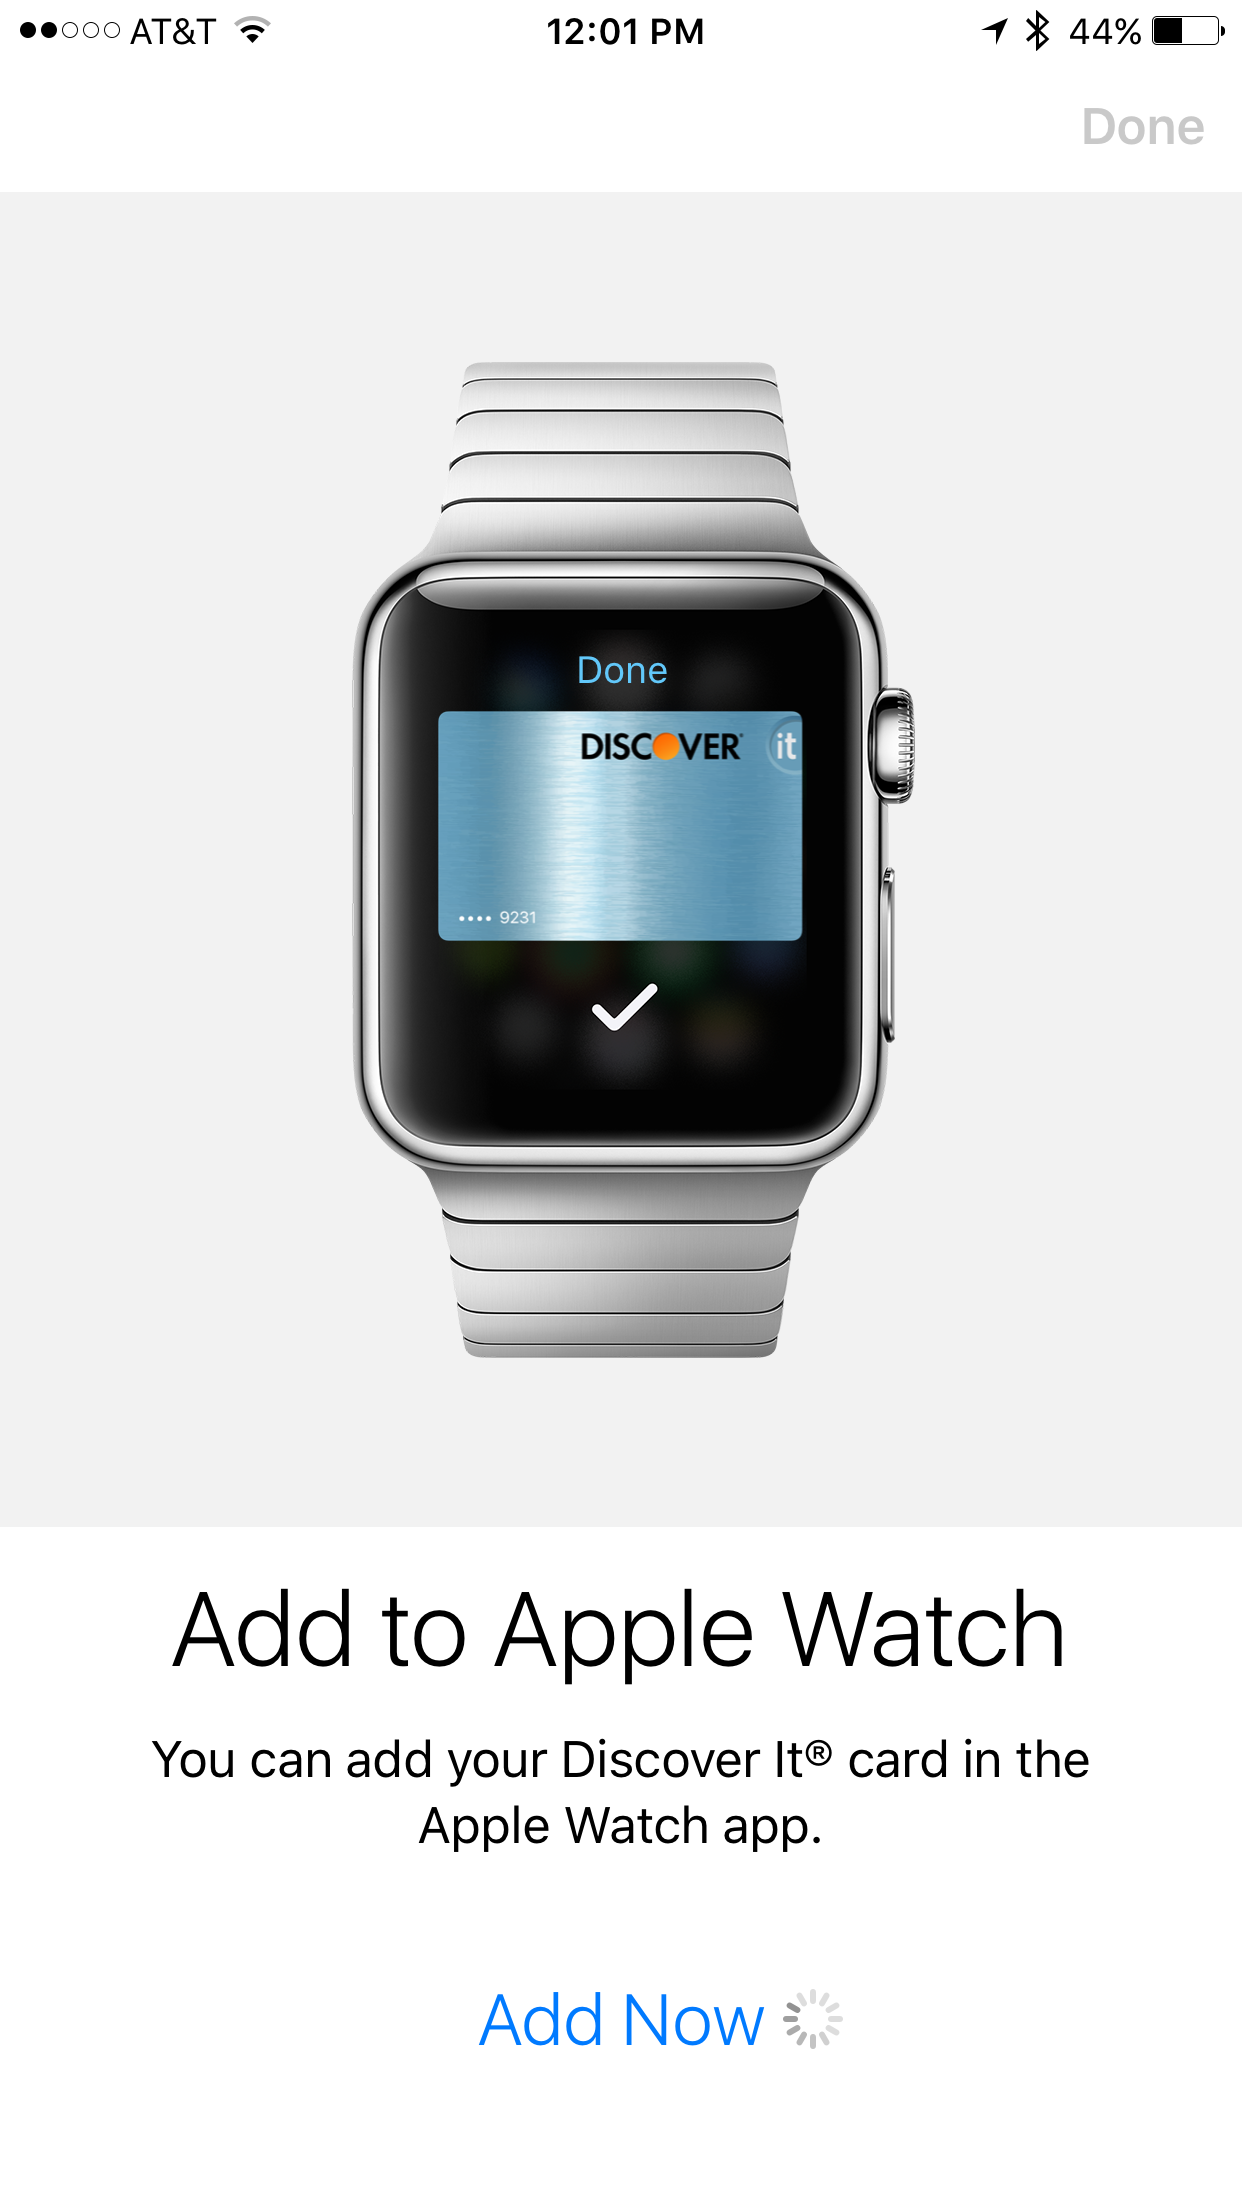 applewatch-discover